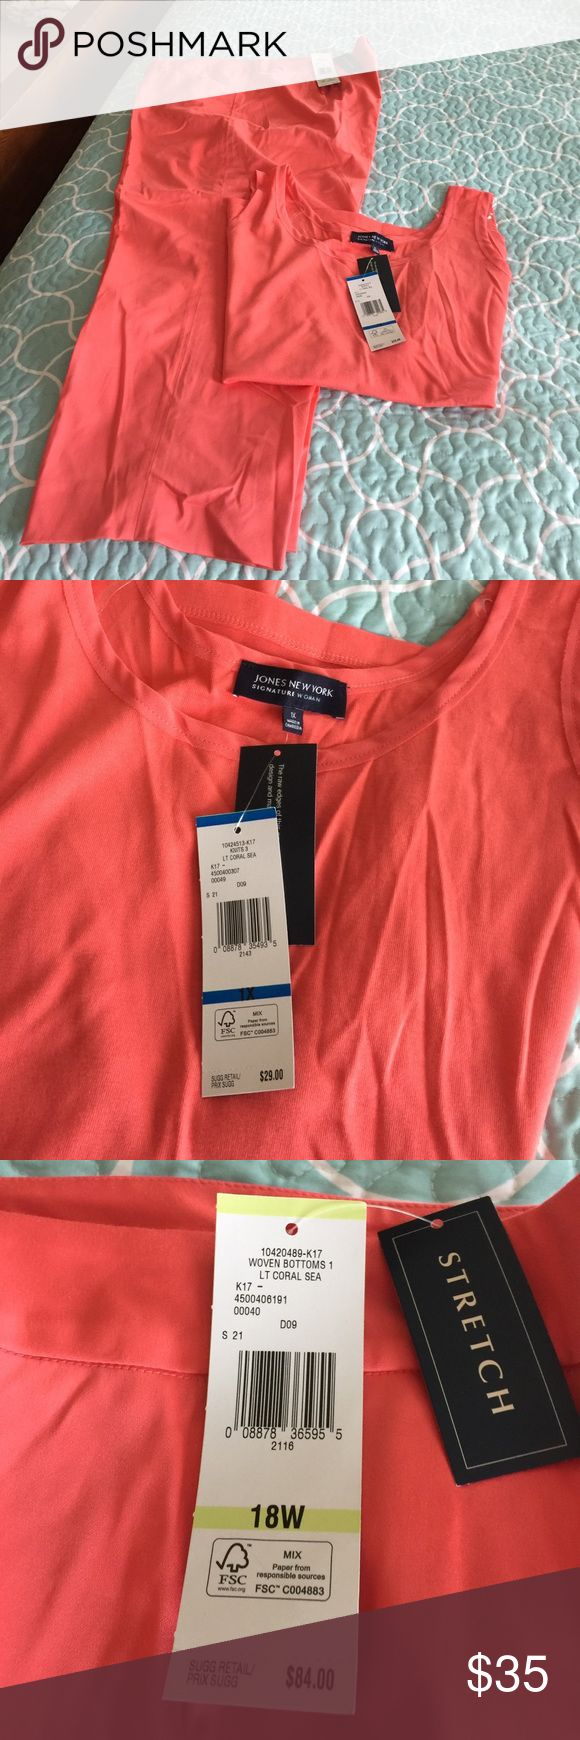 Matching coral capris & tank! NWT Color is light coral sea.....tank is 100% cotton.....capris are 98%. Cotton with 2% elastane so they stretch! Perfect for these hot temps! Jones New York Other